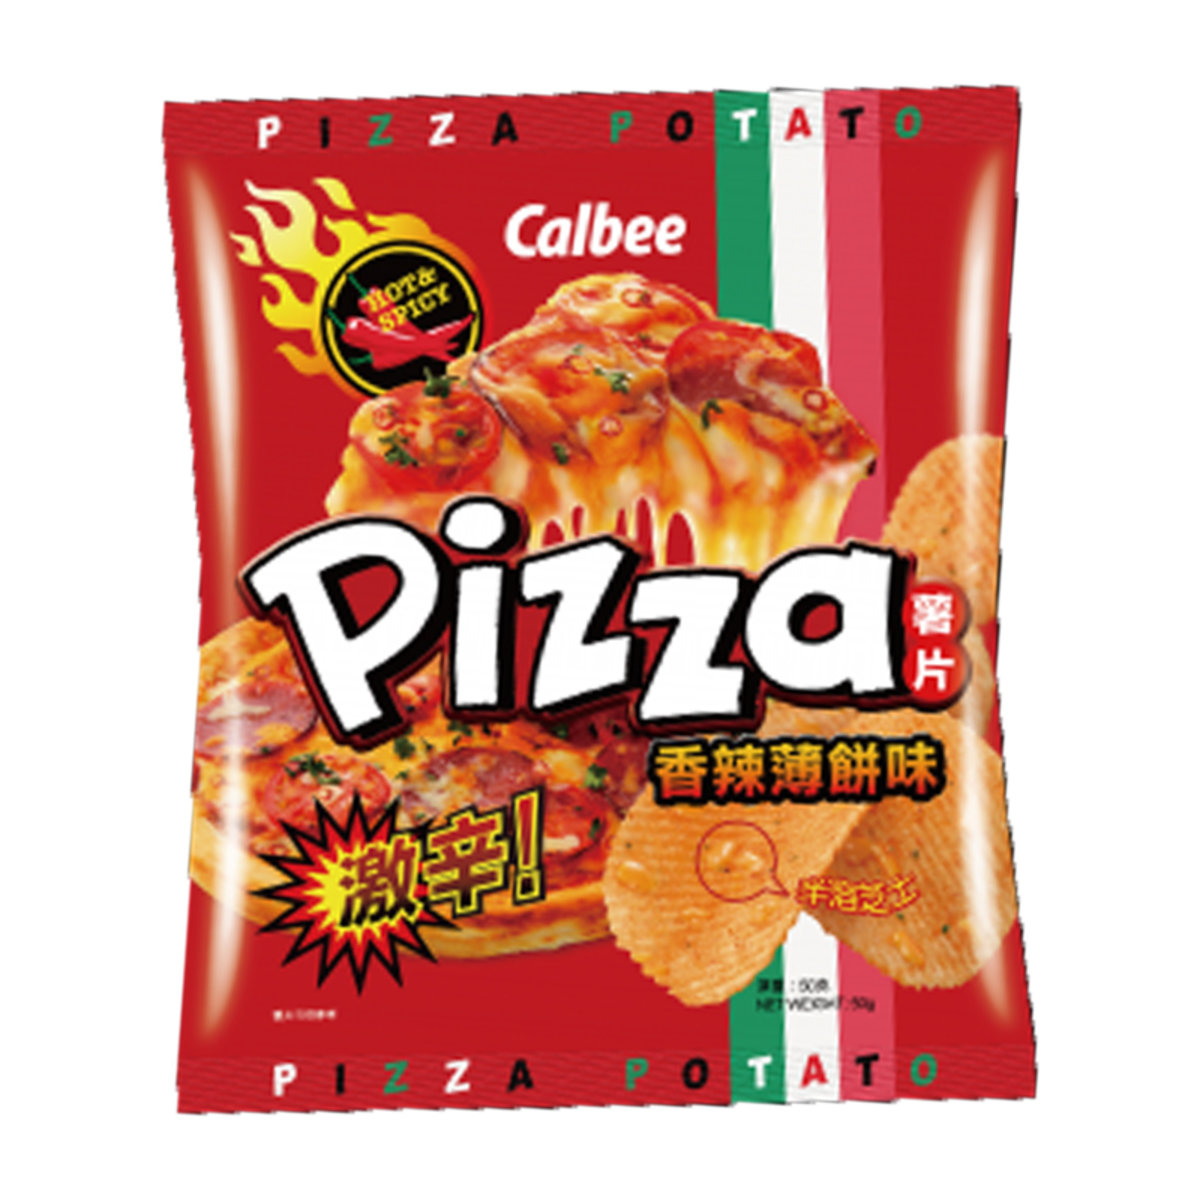 Pizza Flavor Potato Chips Hot & Spicy Thick Cuts Chips 55g (4892294401122)